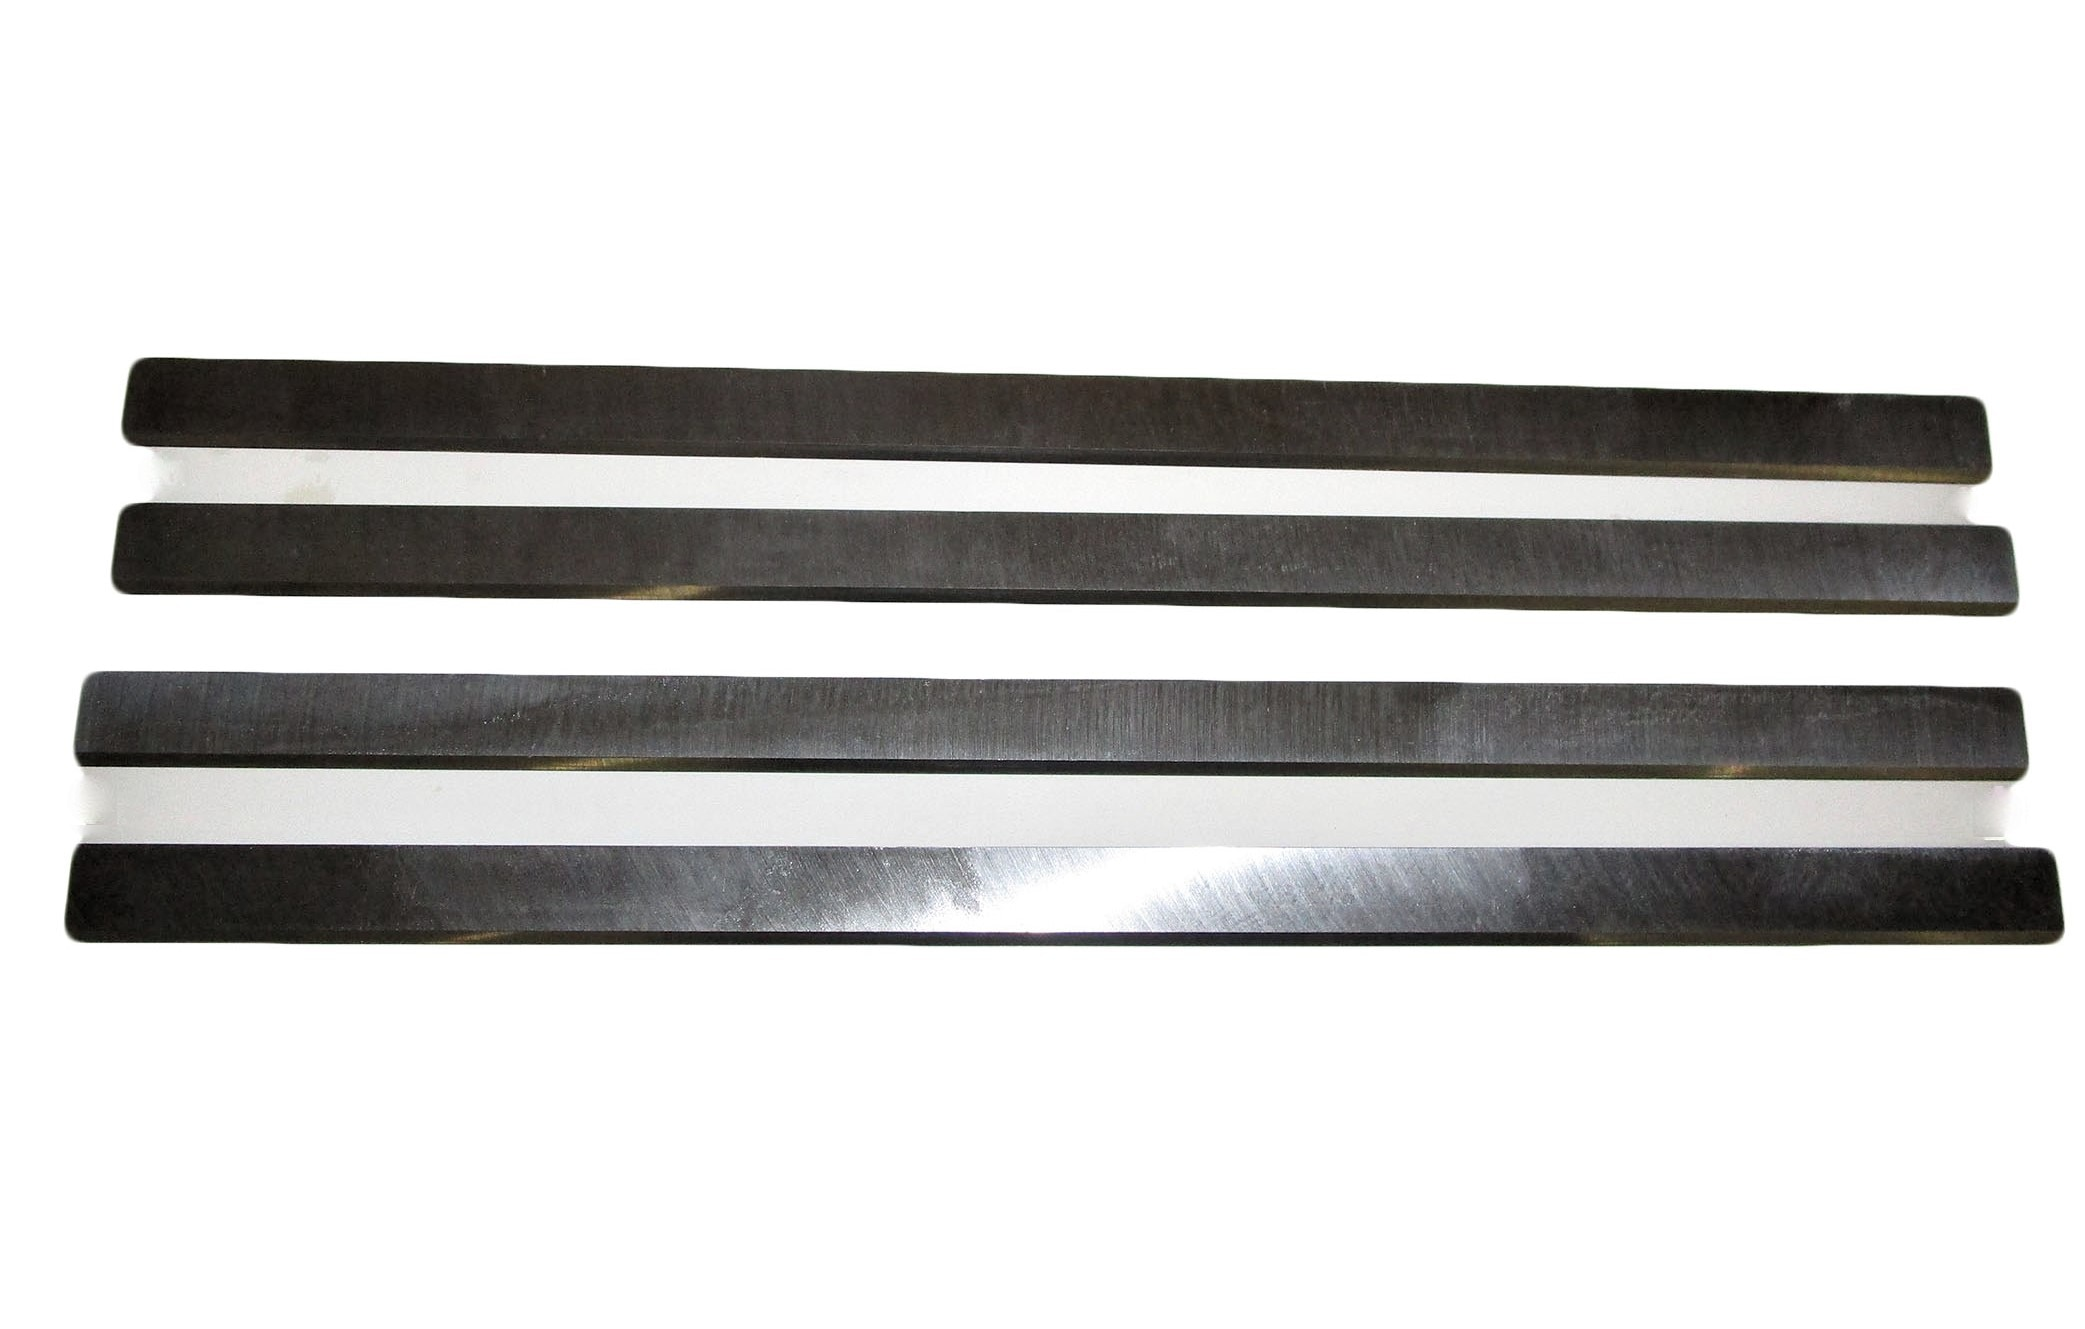 "20"" Knives for Powermatic Models 208 and 209 Planers"